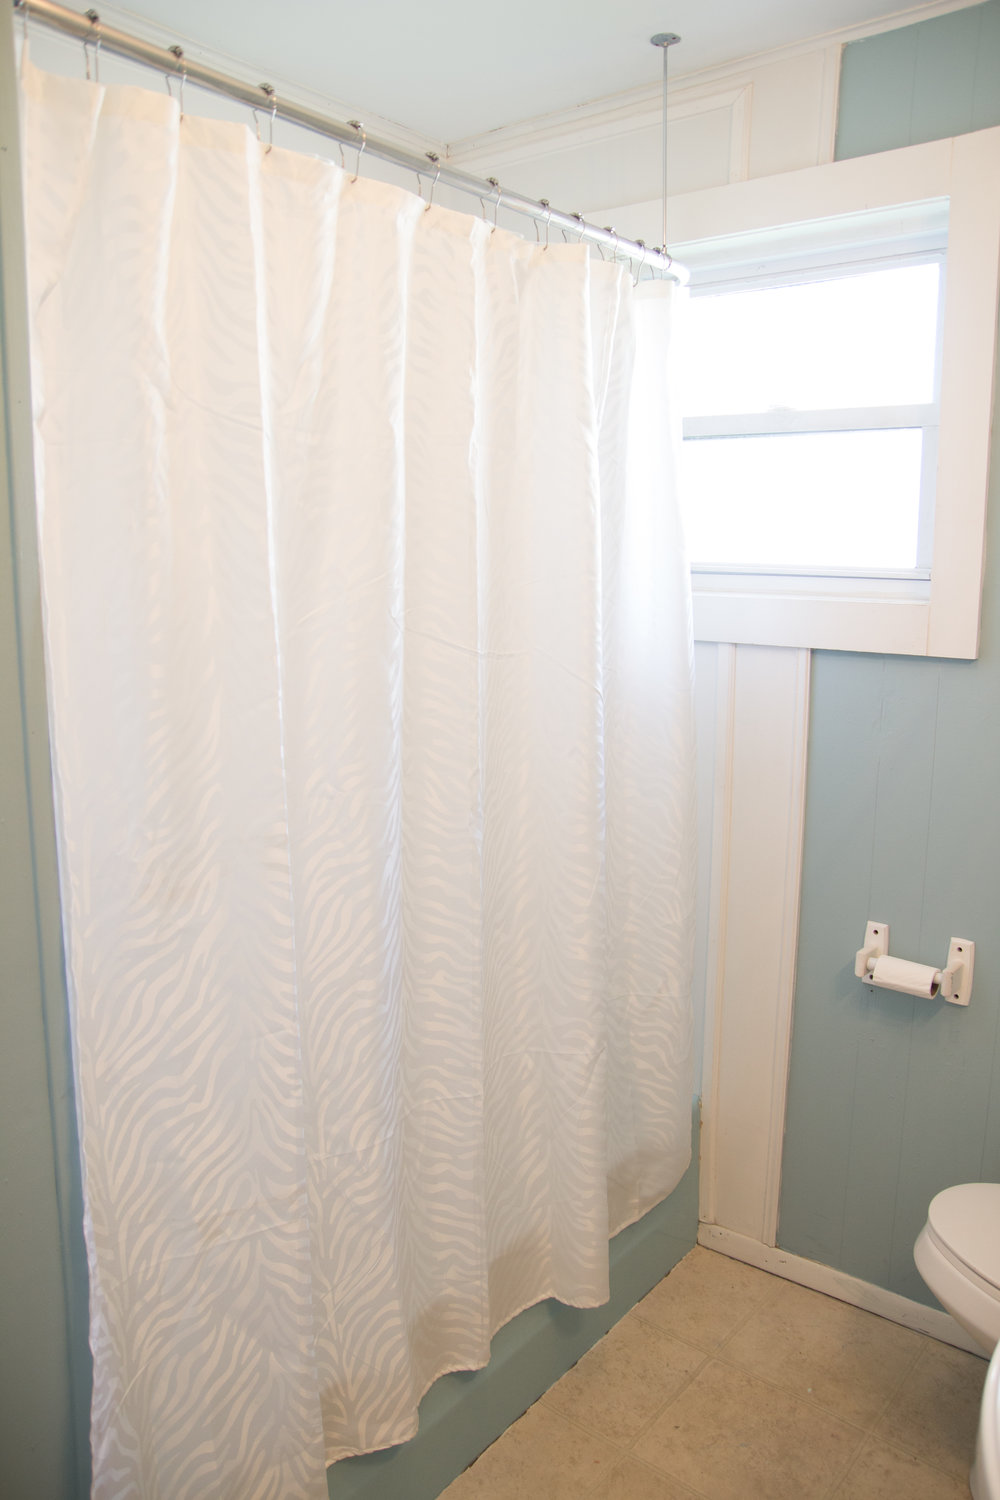 8 - Bathroom2.jpg